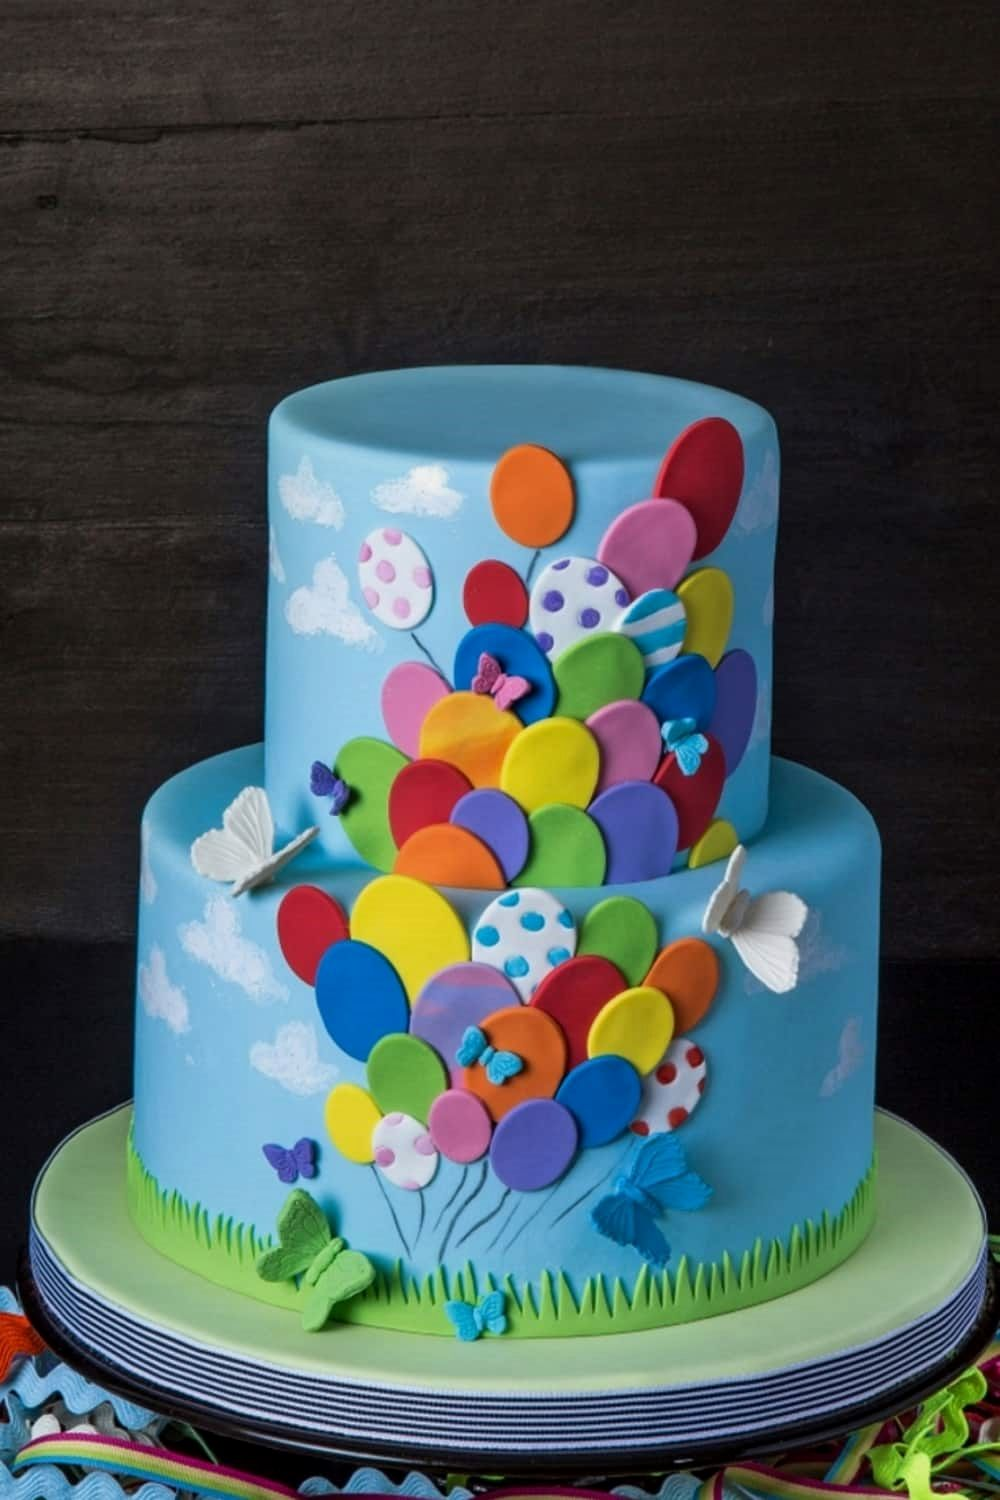 Cake Decorating How About Birthday Cakes For Adults in